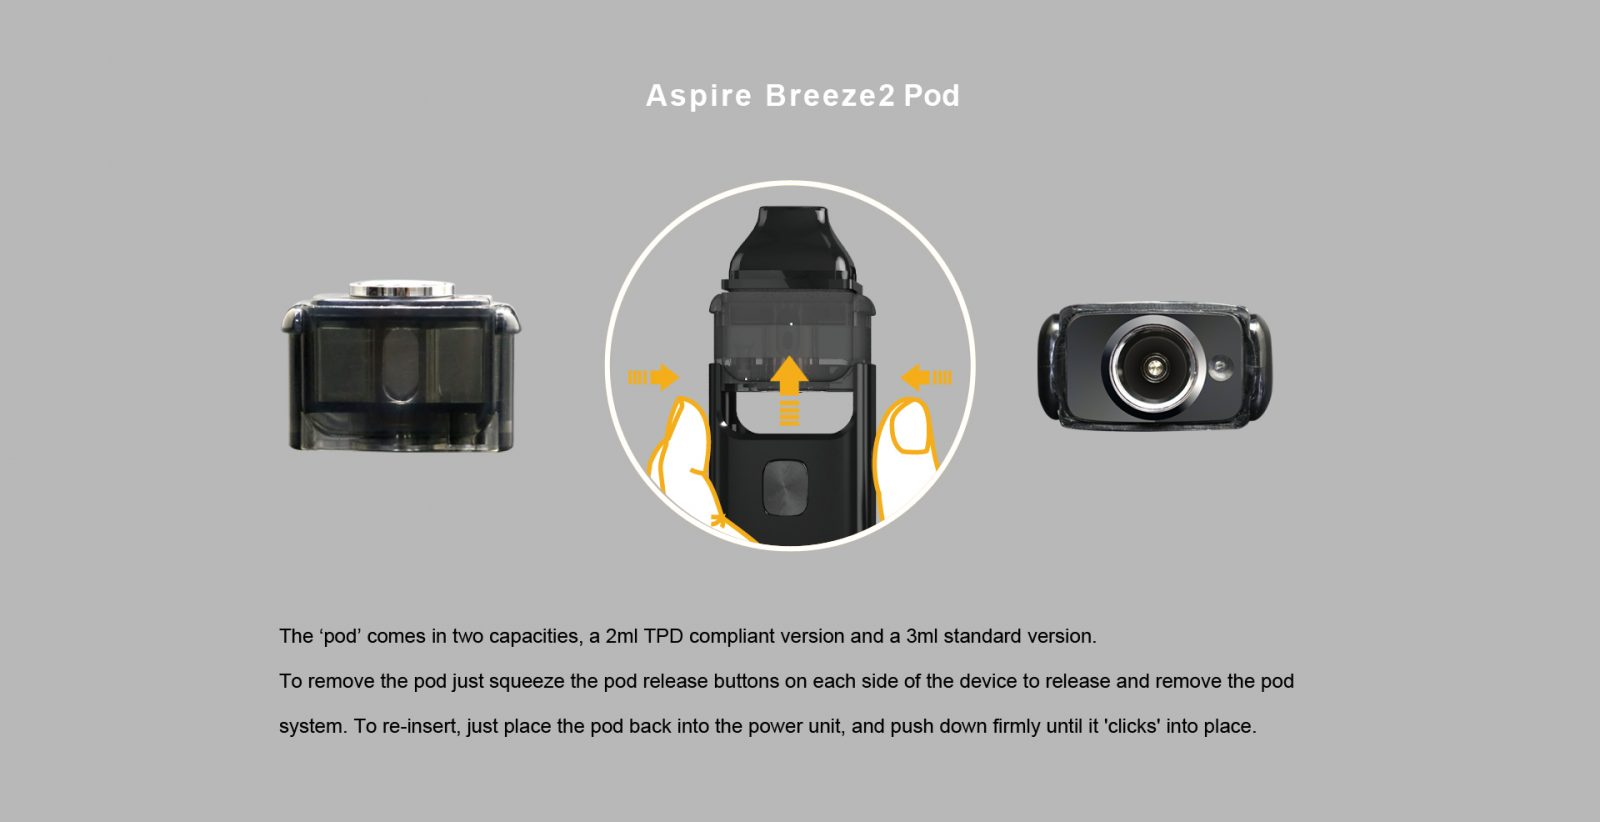 Aspire Breeze 2 AIO Kit Pods